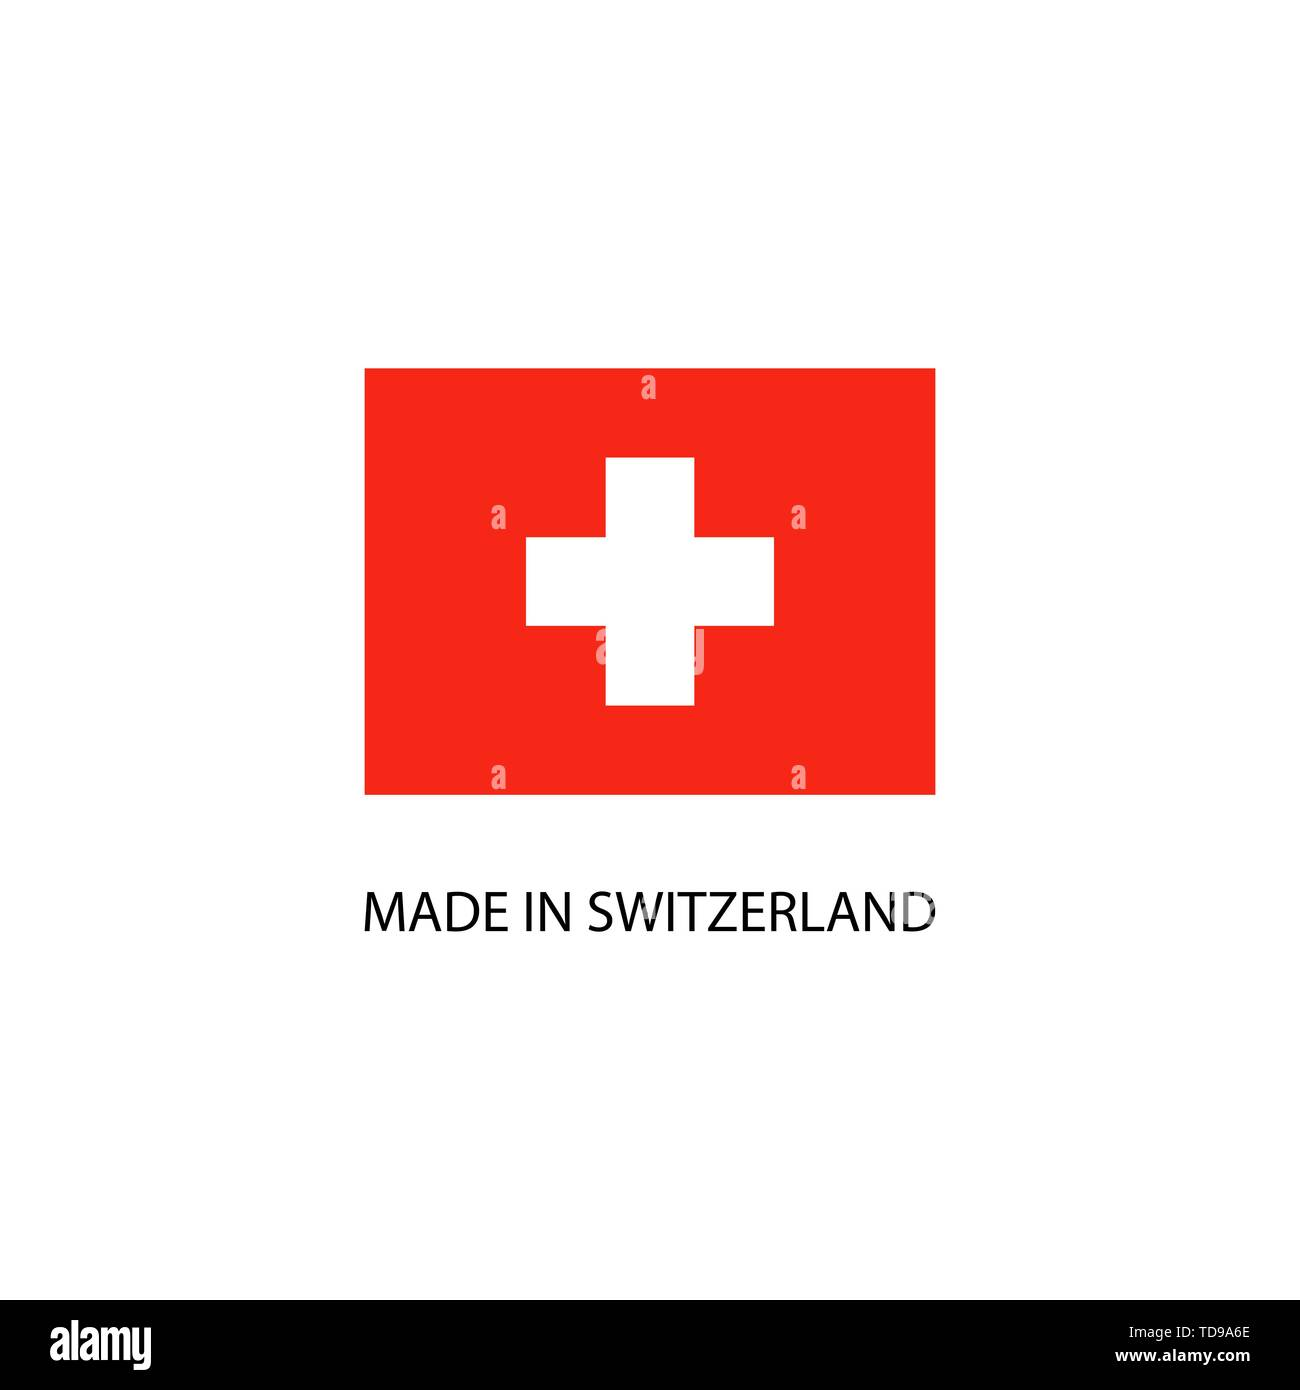 Made in Switzerland sign with national flag - Stock Image